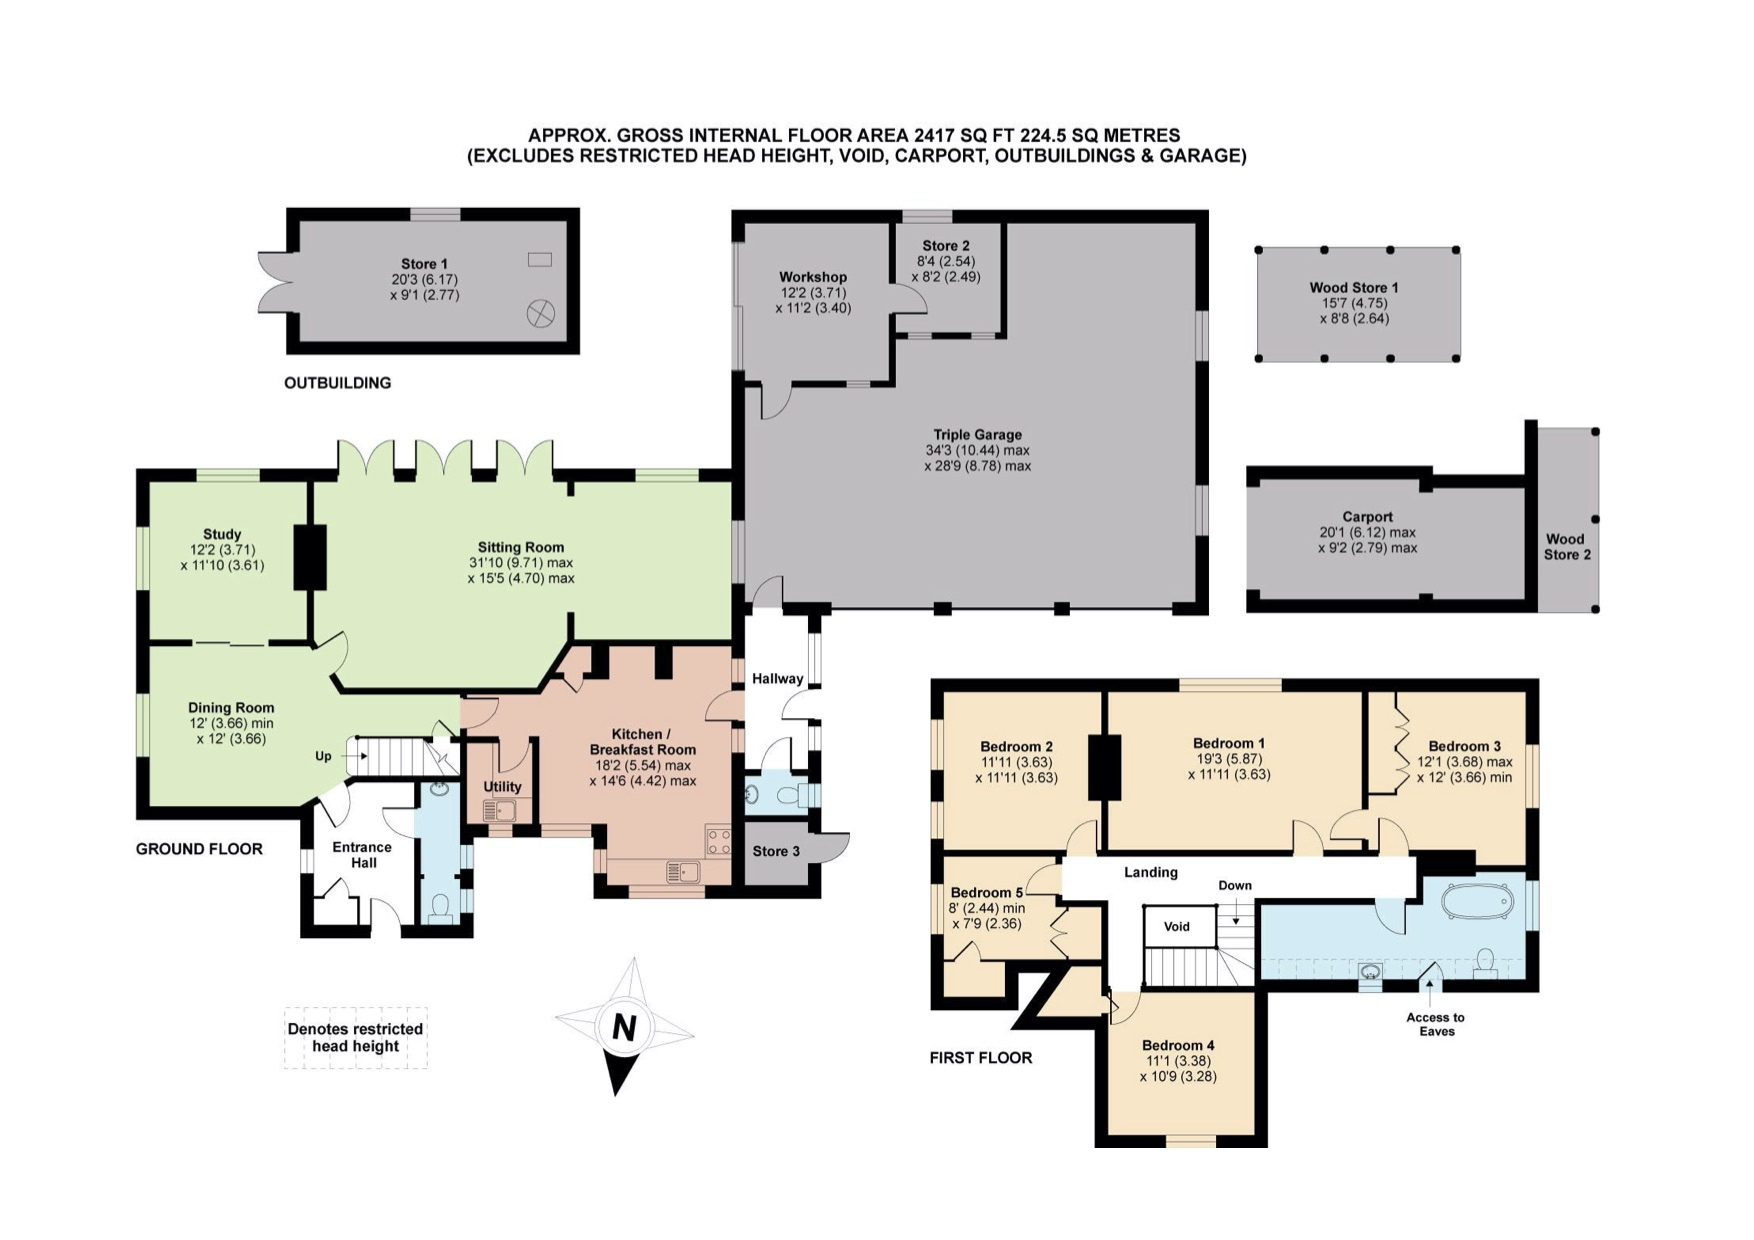 Colour floor plans showing additional garages and renovated spaces